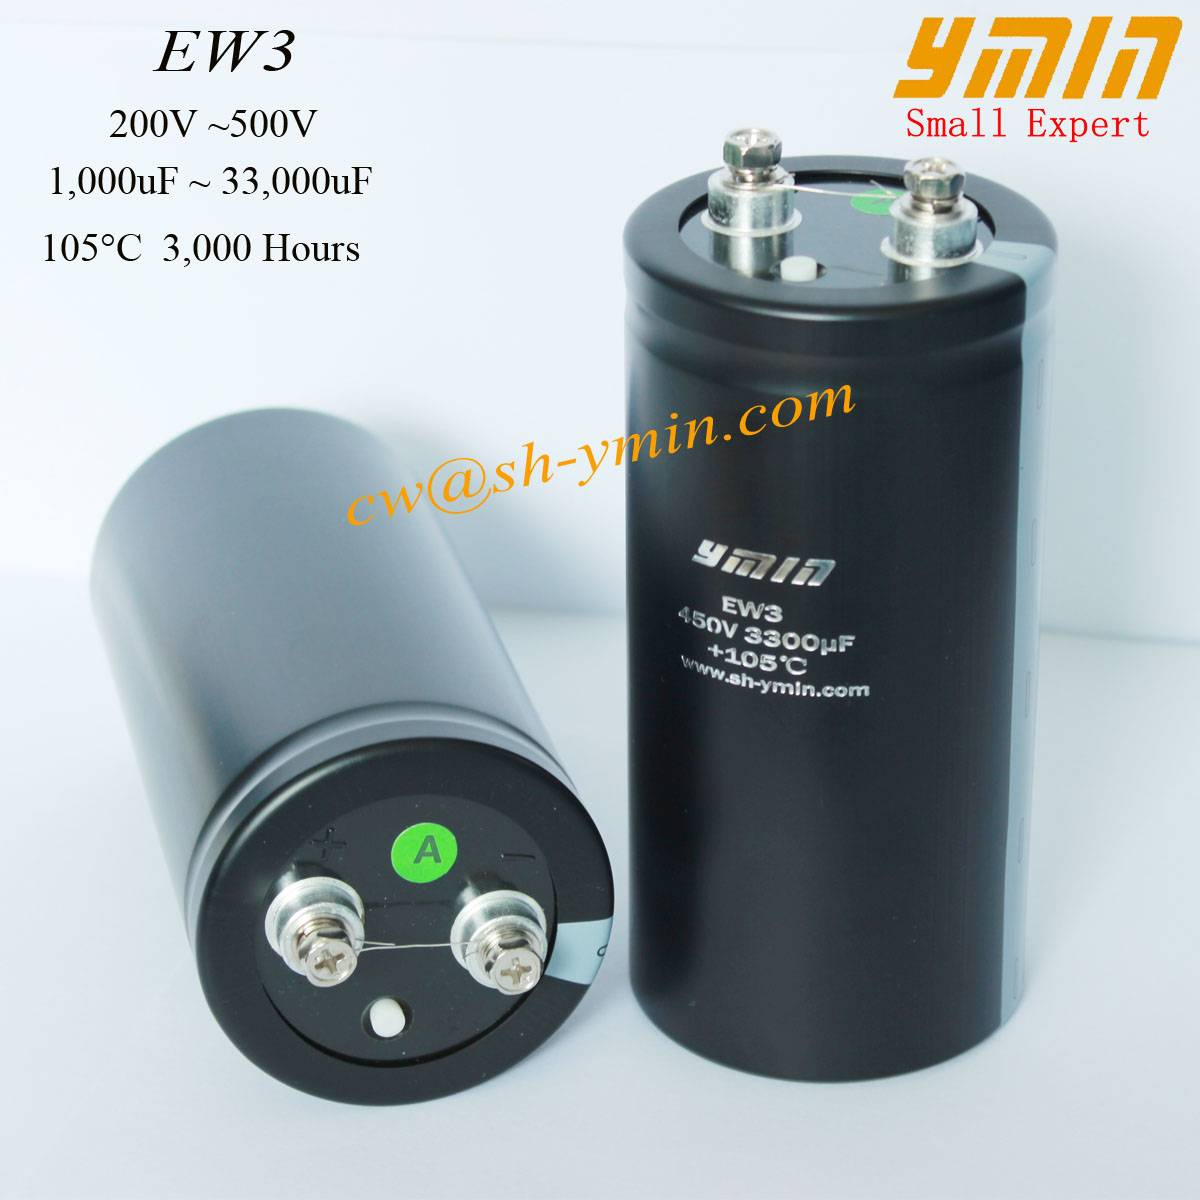 UPS Capacitor Screw Terminal Electrolytic Capacitor for UPS Power Supply